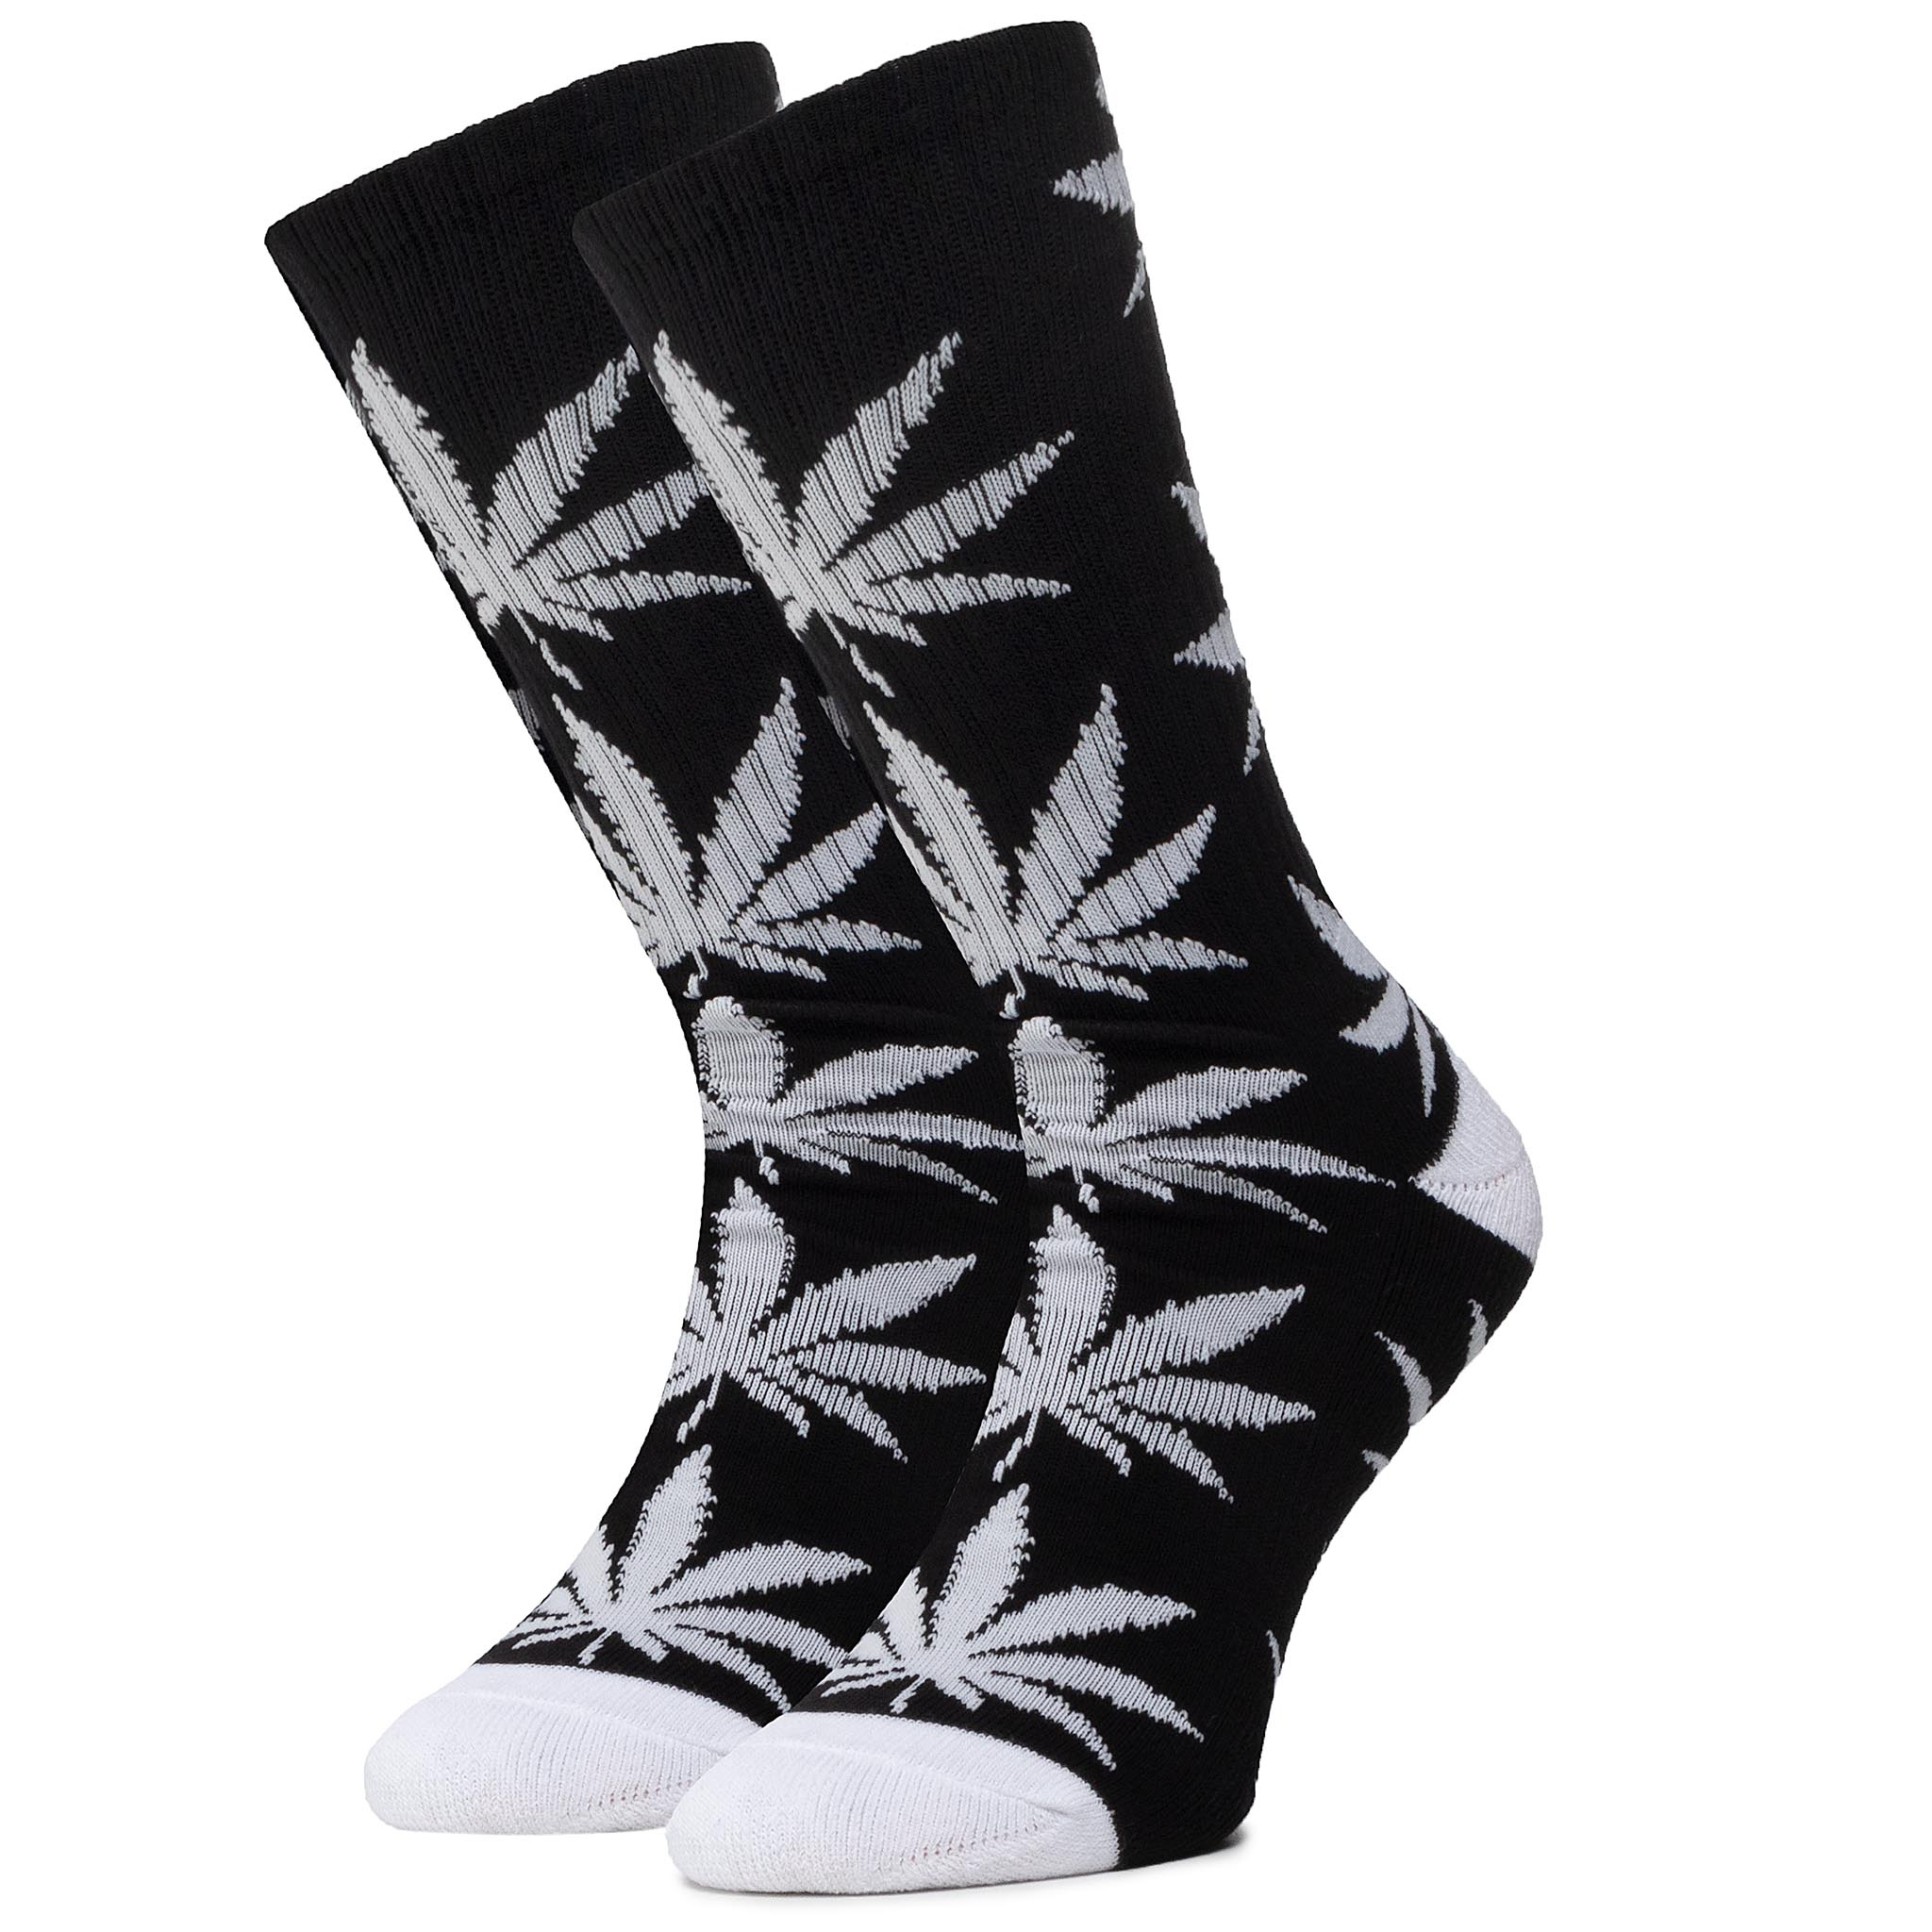 Șosete Înalte Unisex Huf - Essentials Plantlife Sock Sk00298 R.Os Black imagine